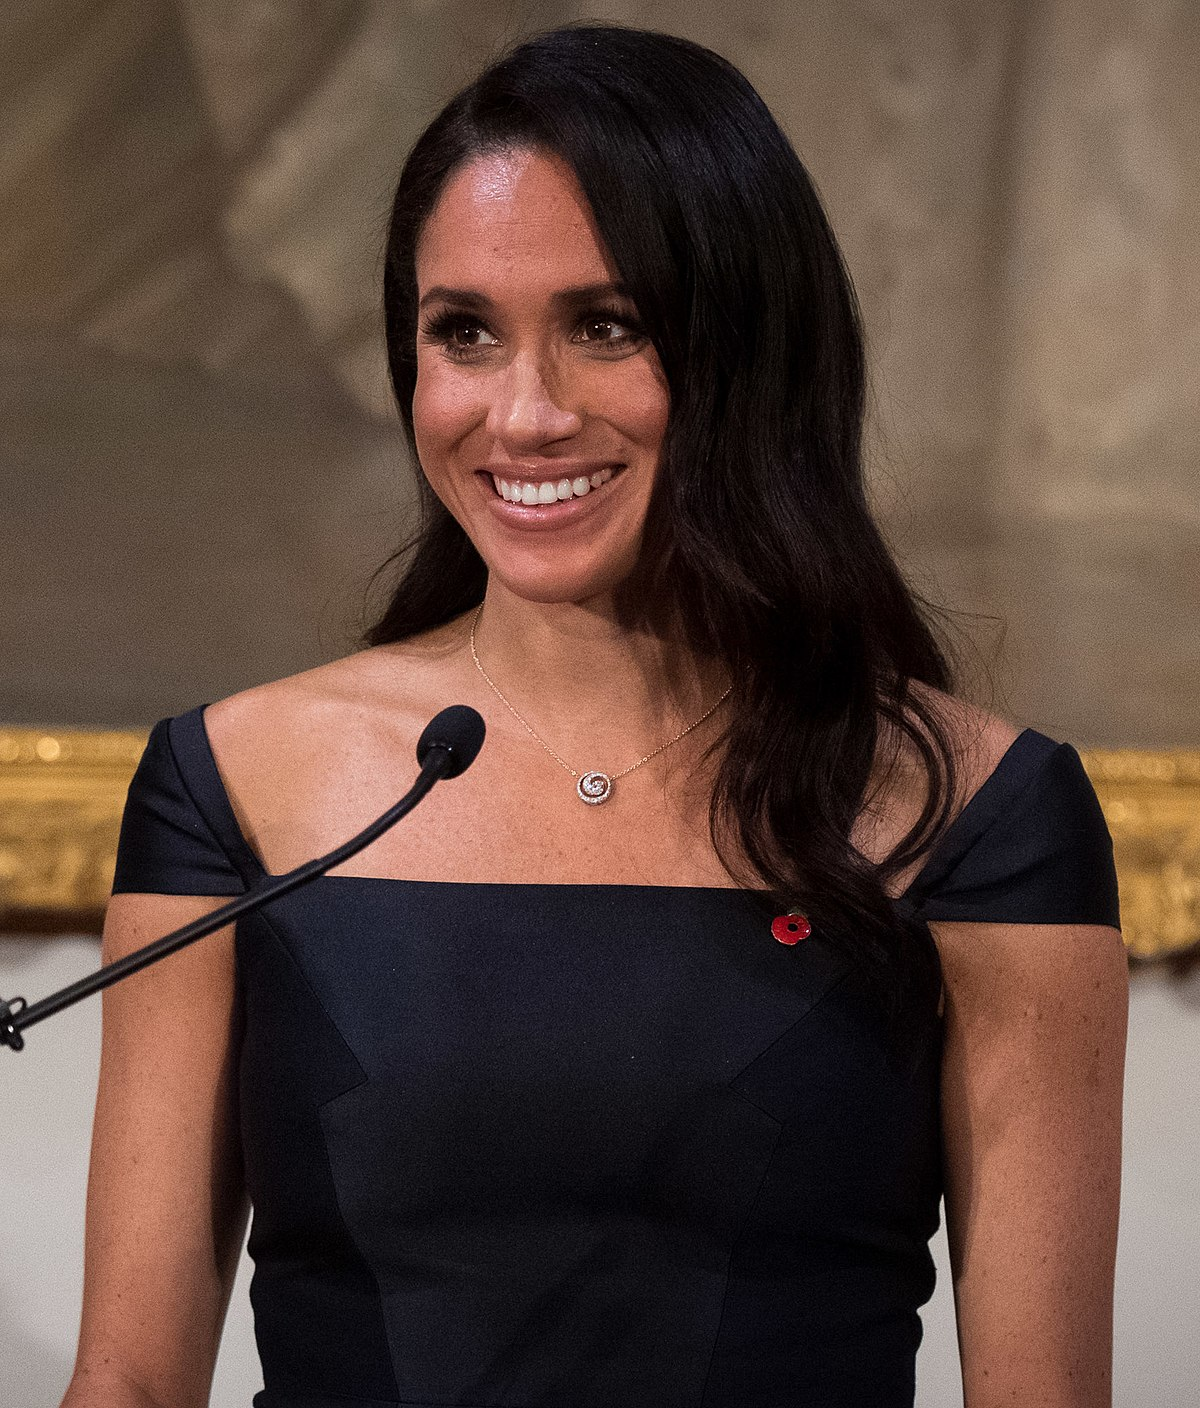 meghan-markle-mail-on-sunday-lawsuit-the-milkmaid-oscar-salah-liverpool-player-of-the-month-latest-news-global-world-stories-friday-february-2021-style-rave